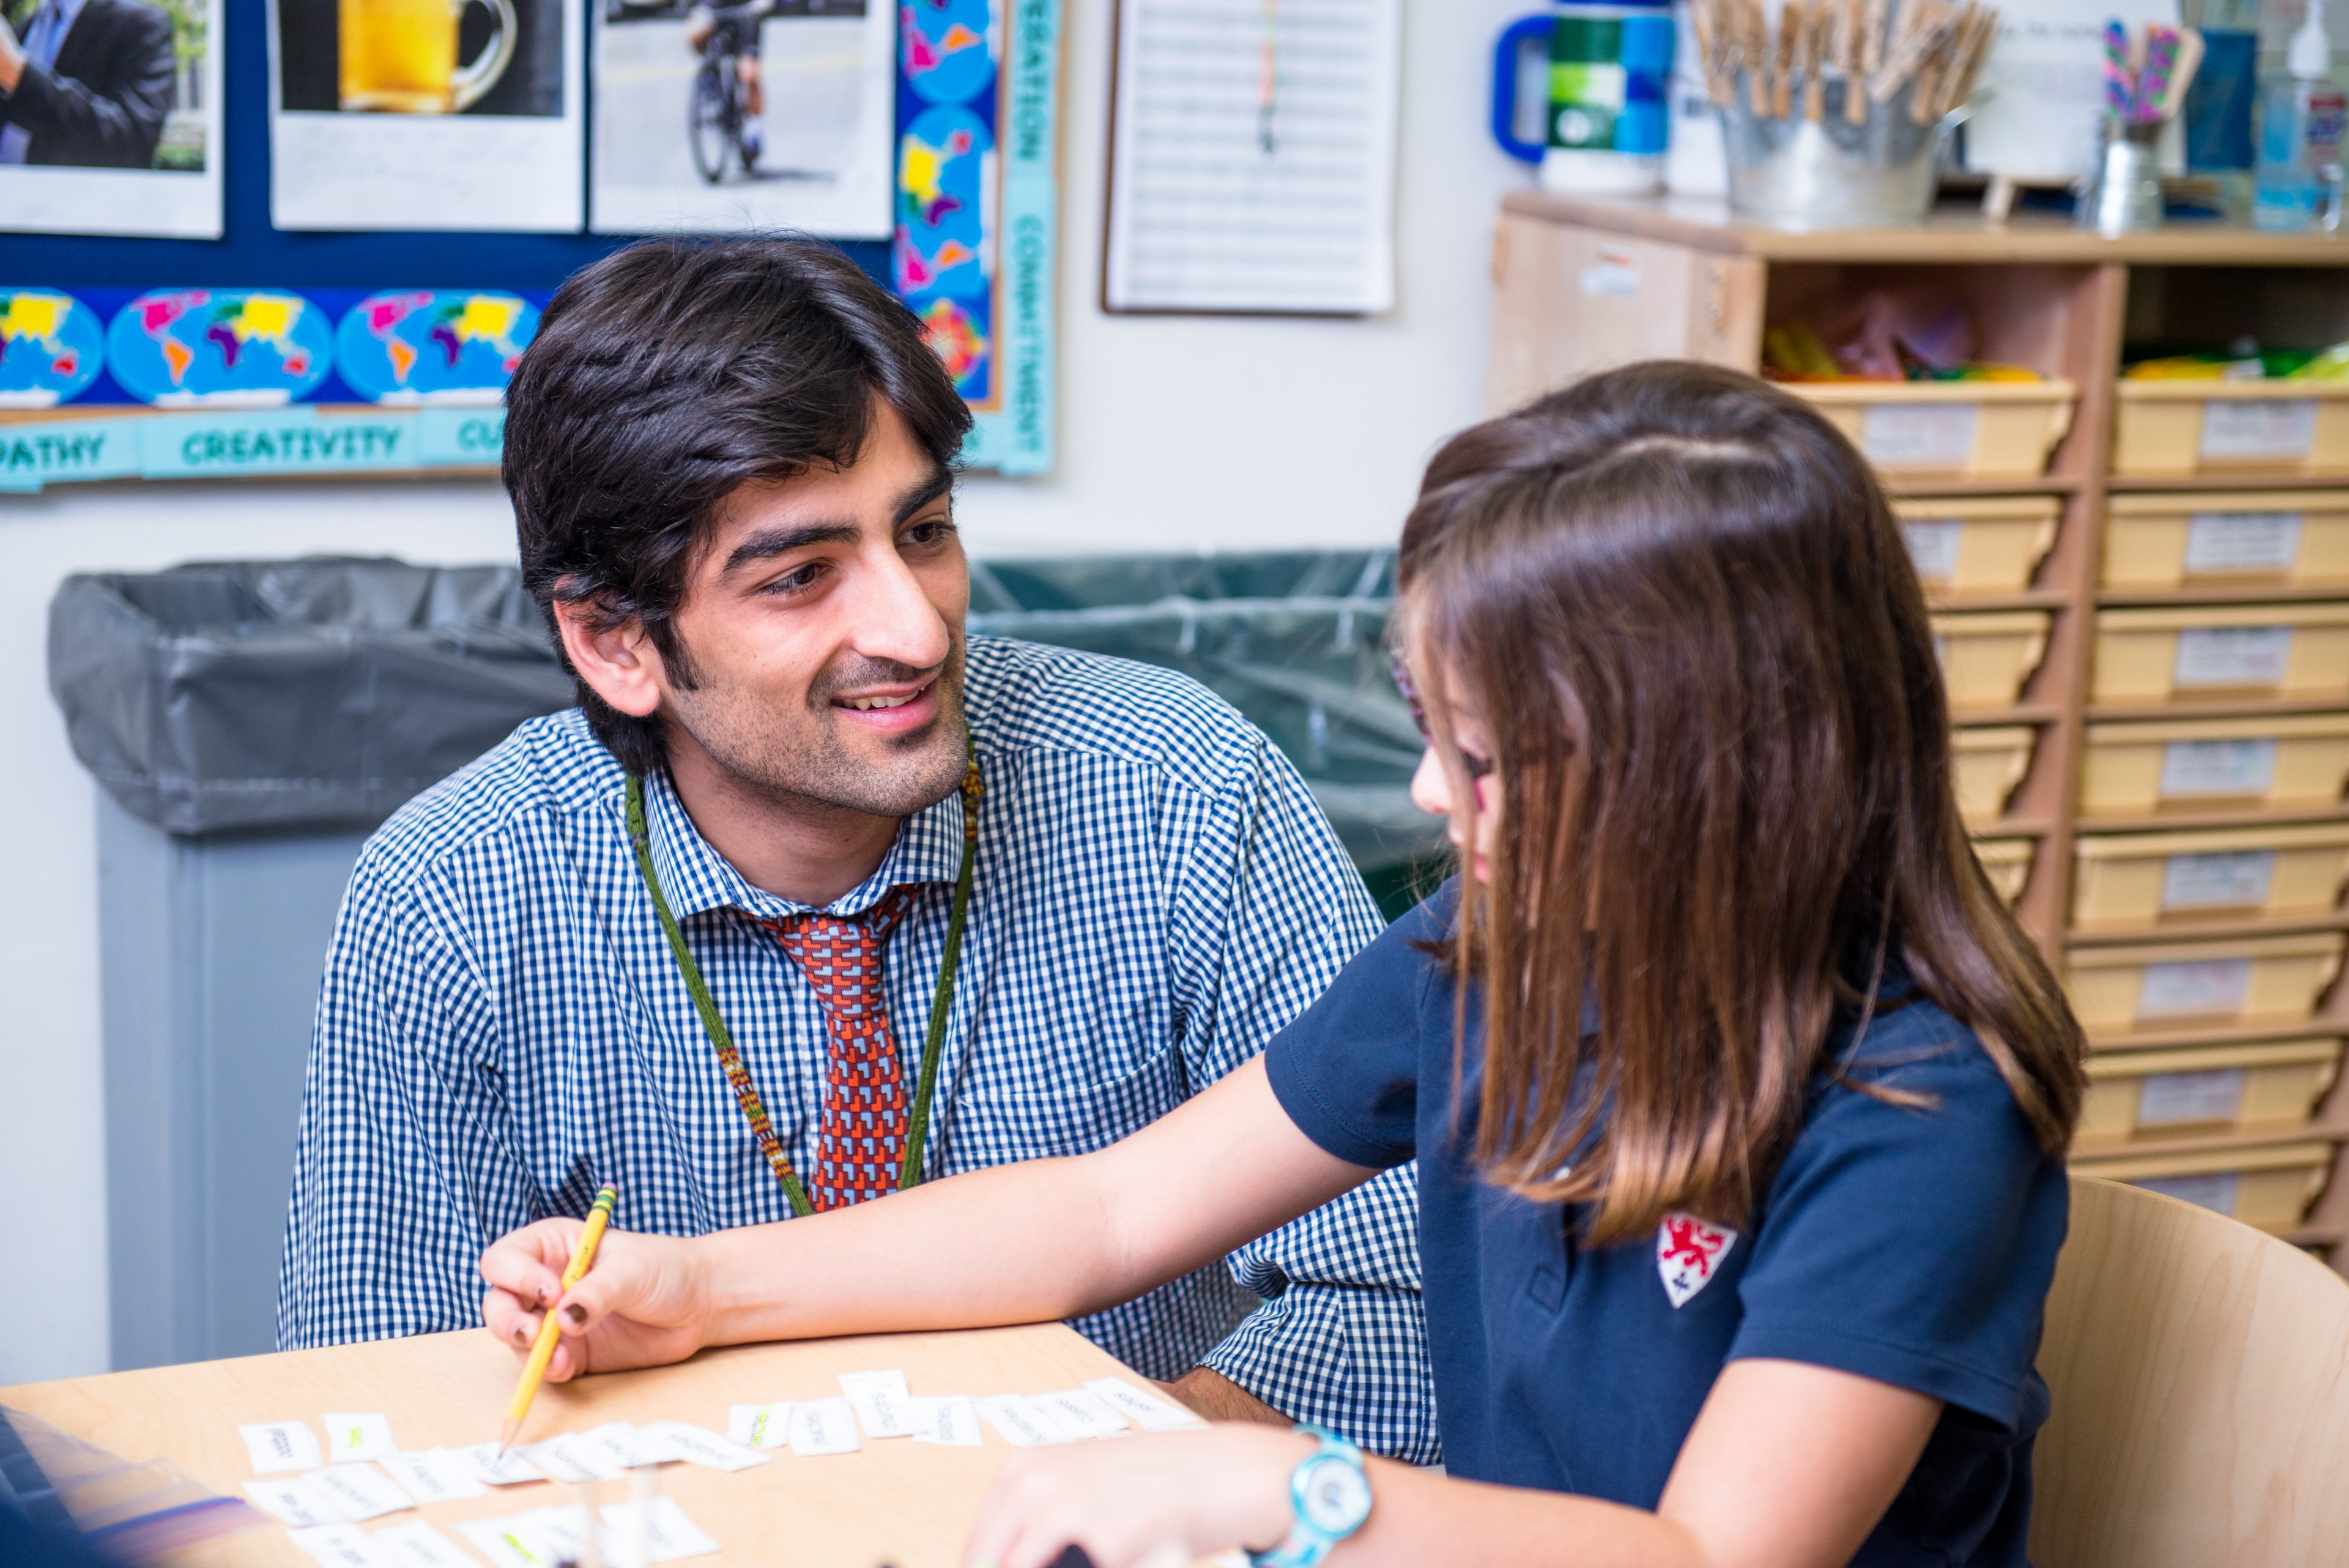 Dwight students benefit from personalized learning in classrooms with small teacher-student ratios. -